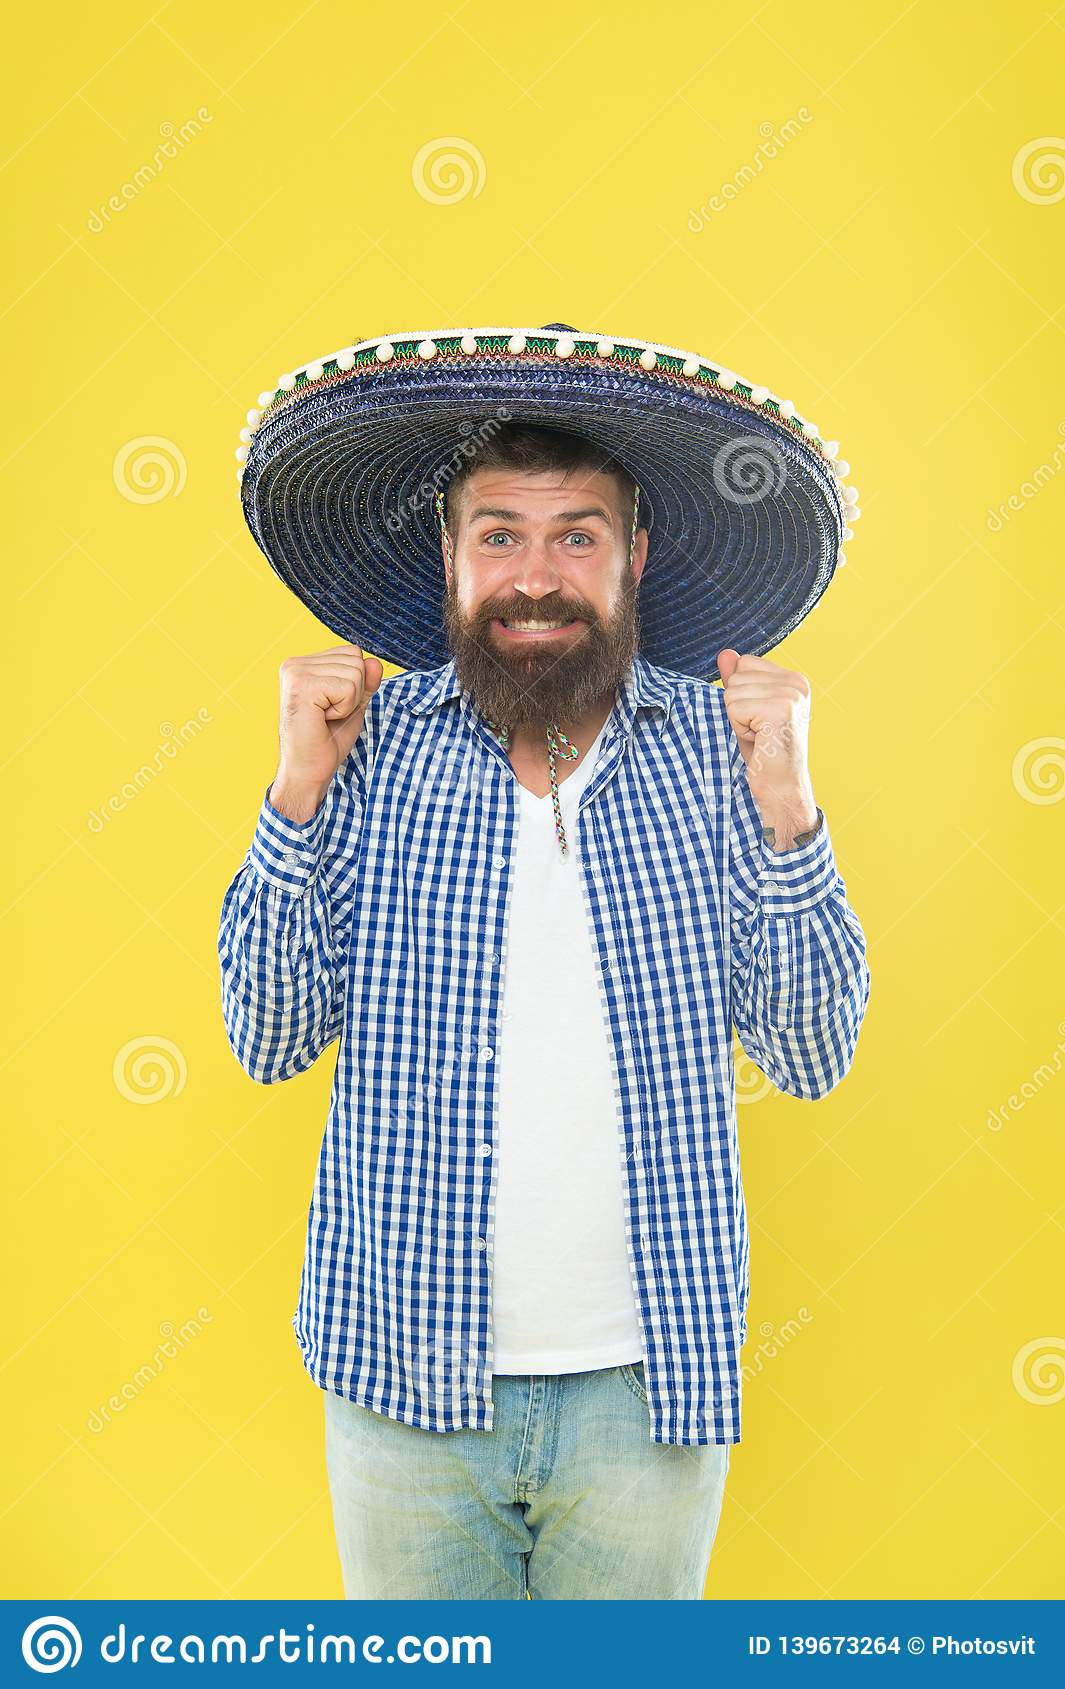 cd63210ec4c His giant sombrero is perfect. Traditional fashion accessory for costume  party. Mexican man wearing sombrero. Bearded man in mexican hat.